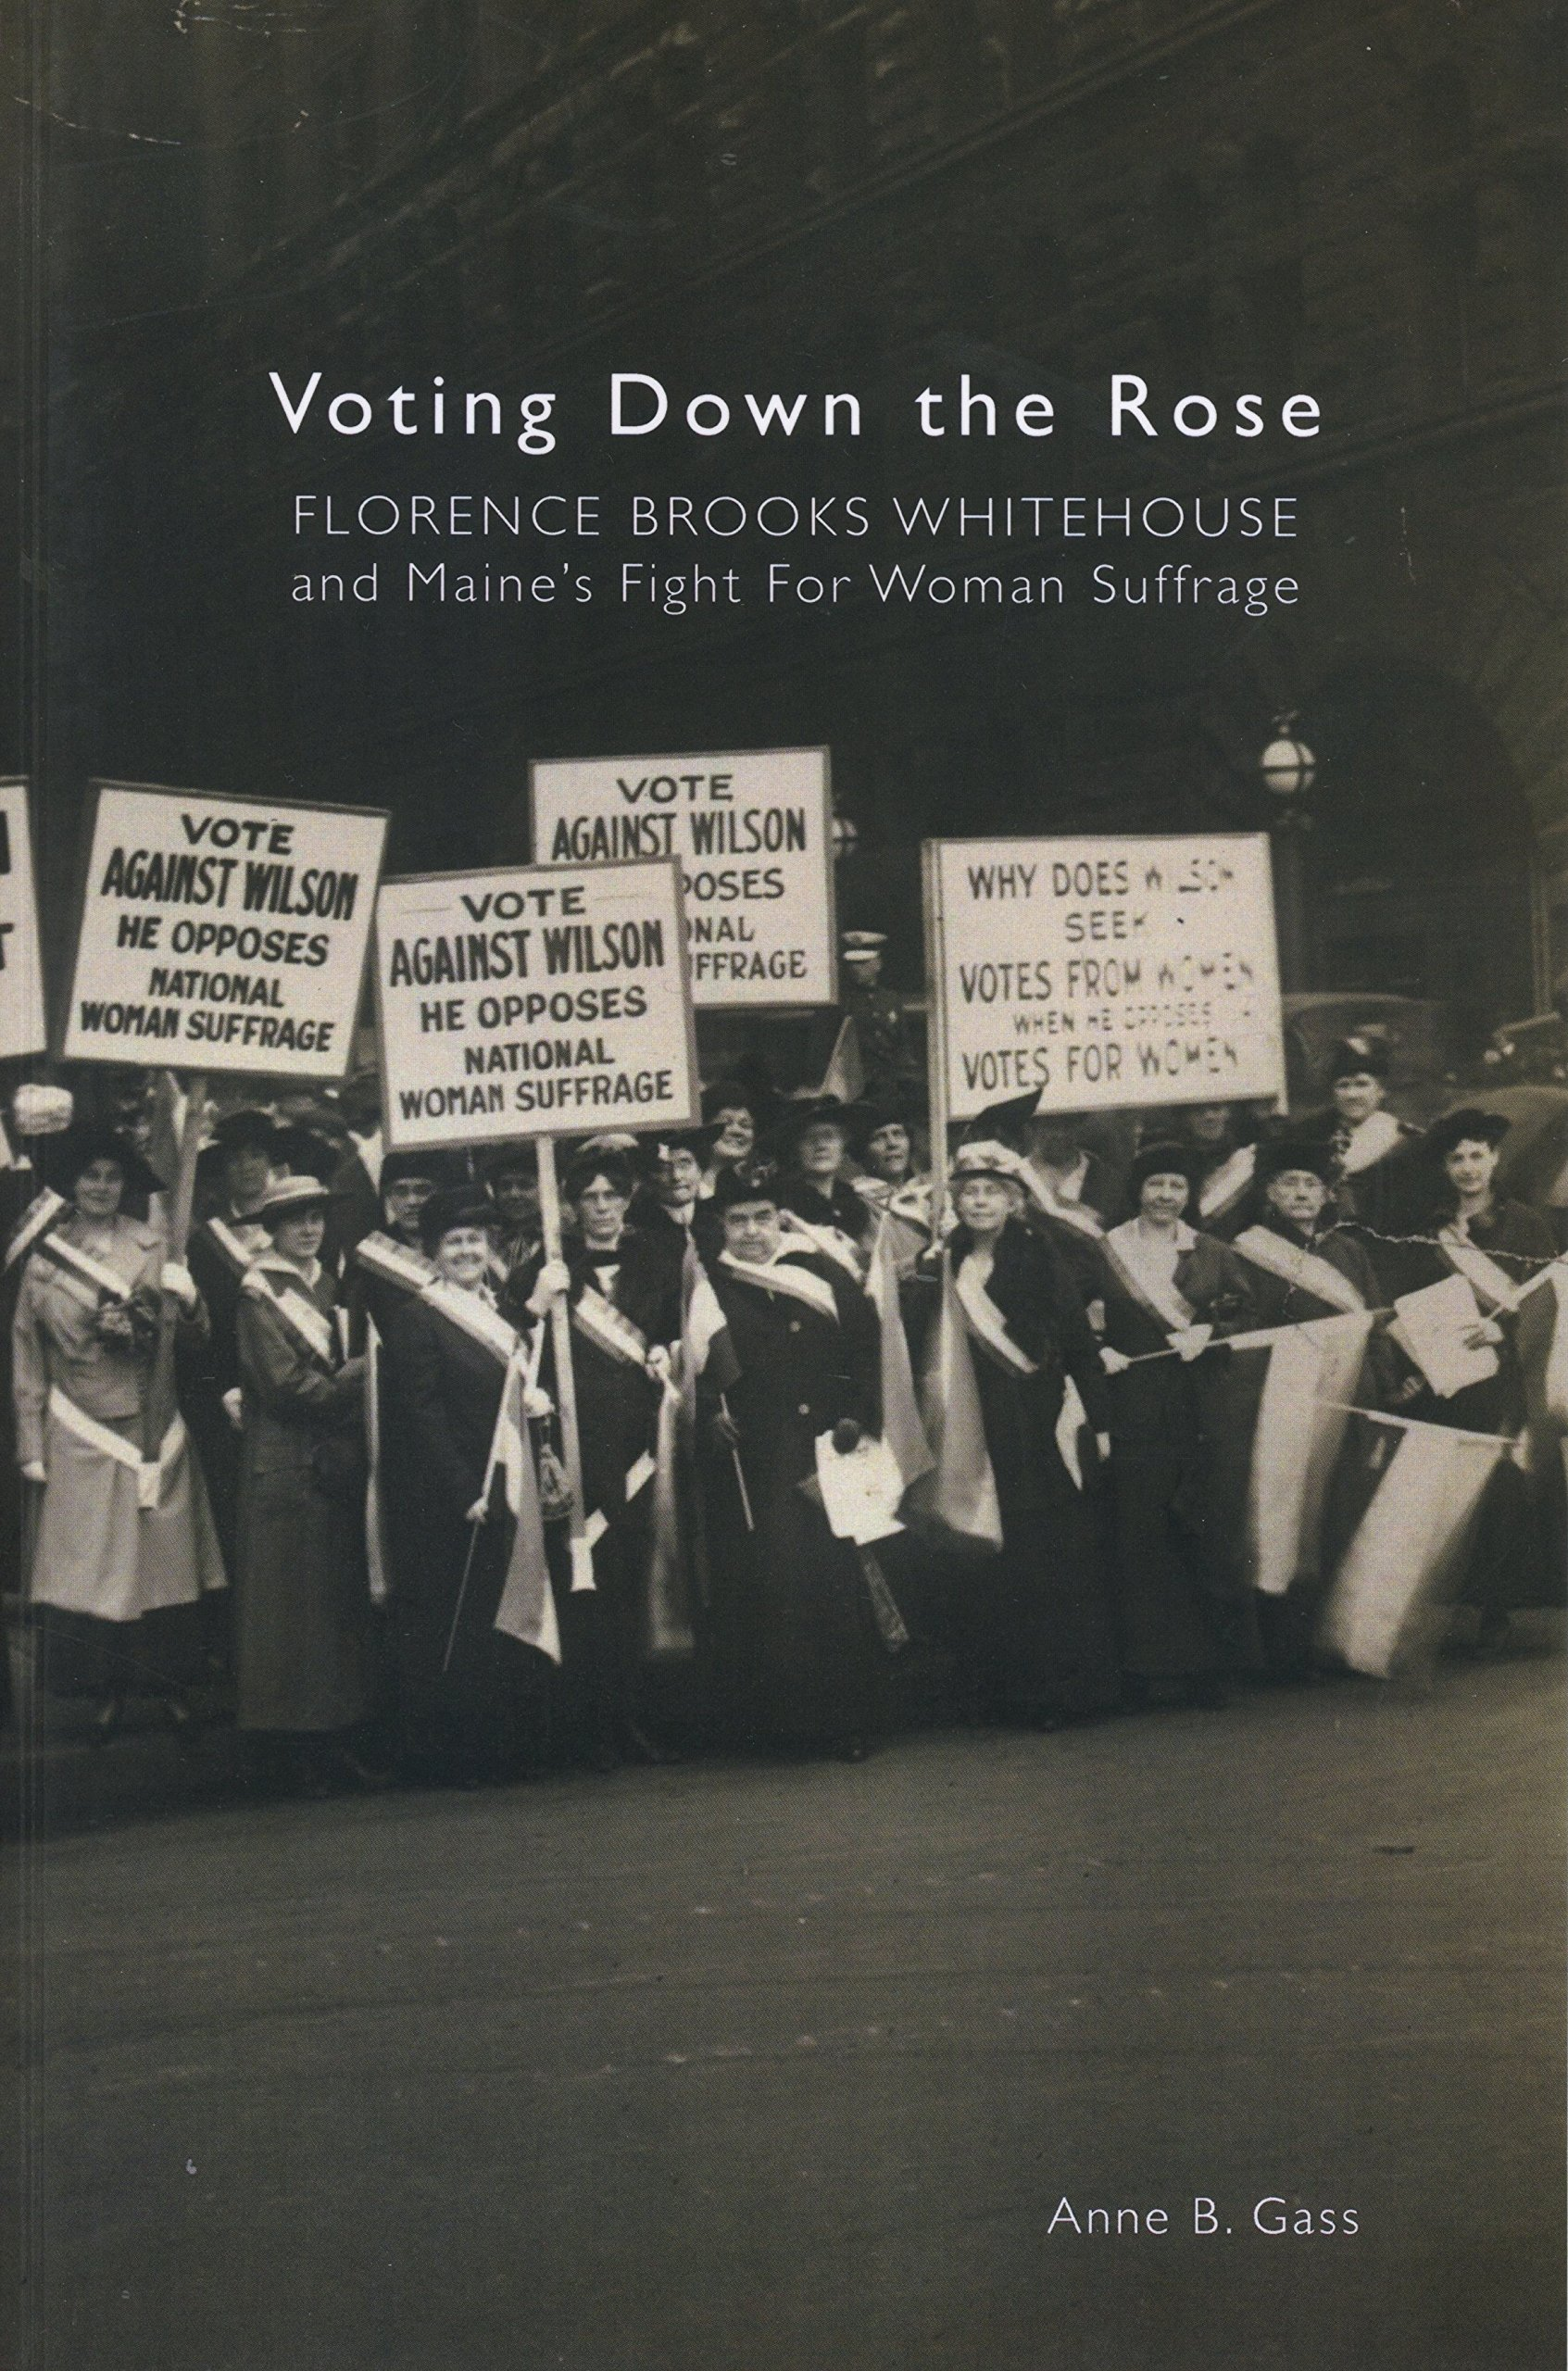 Exploring Non-fiction Stories: Voting Down the Rose, Maine's Fight for Woman Suffrage